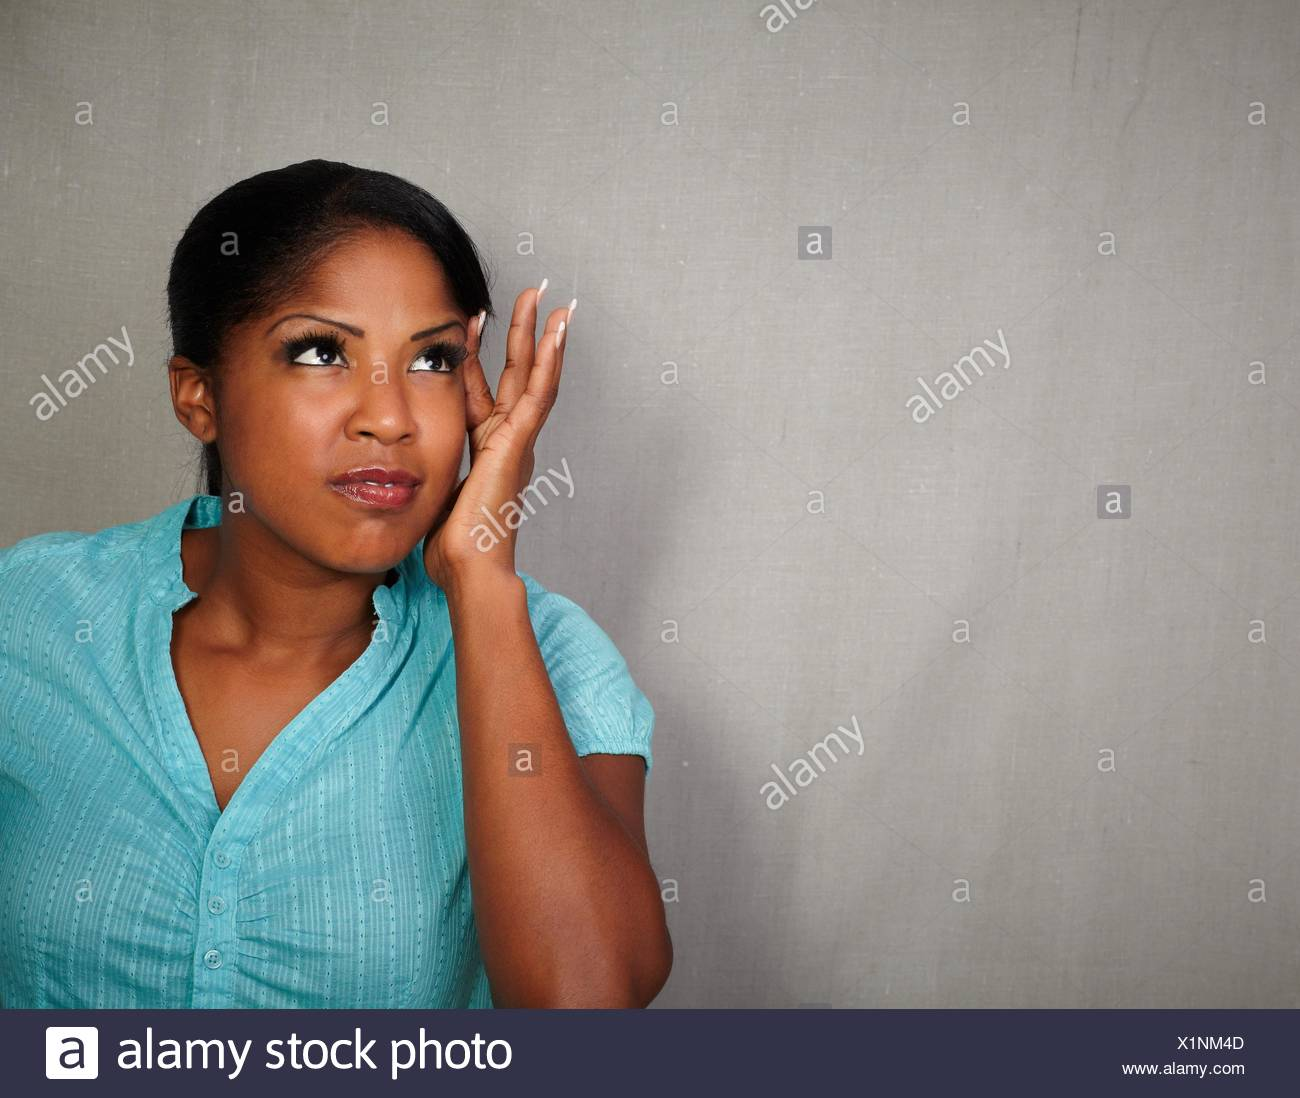 Charismatic young woman of african ethnicity having a headache - copy space. - Stock Image